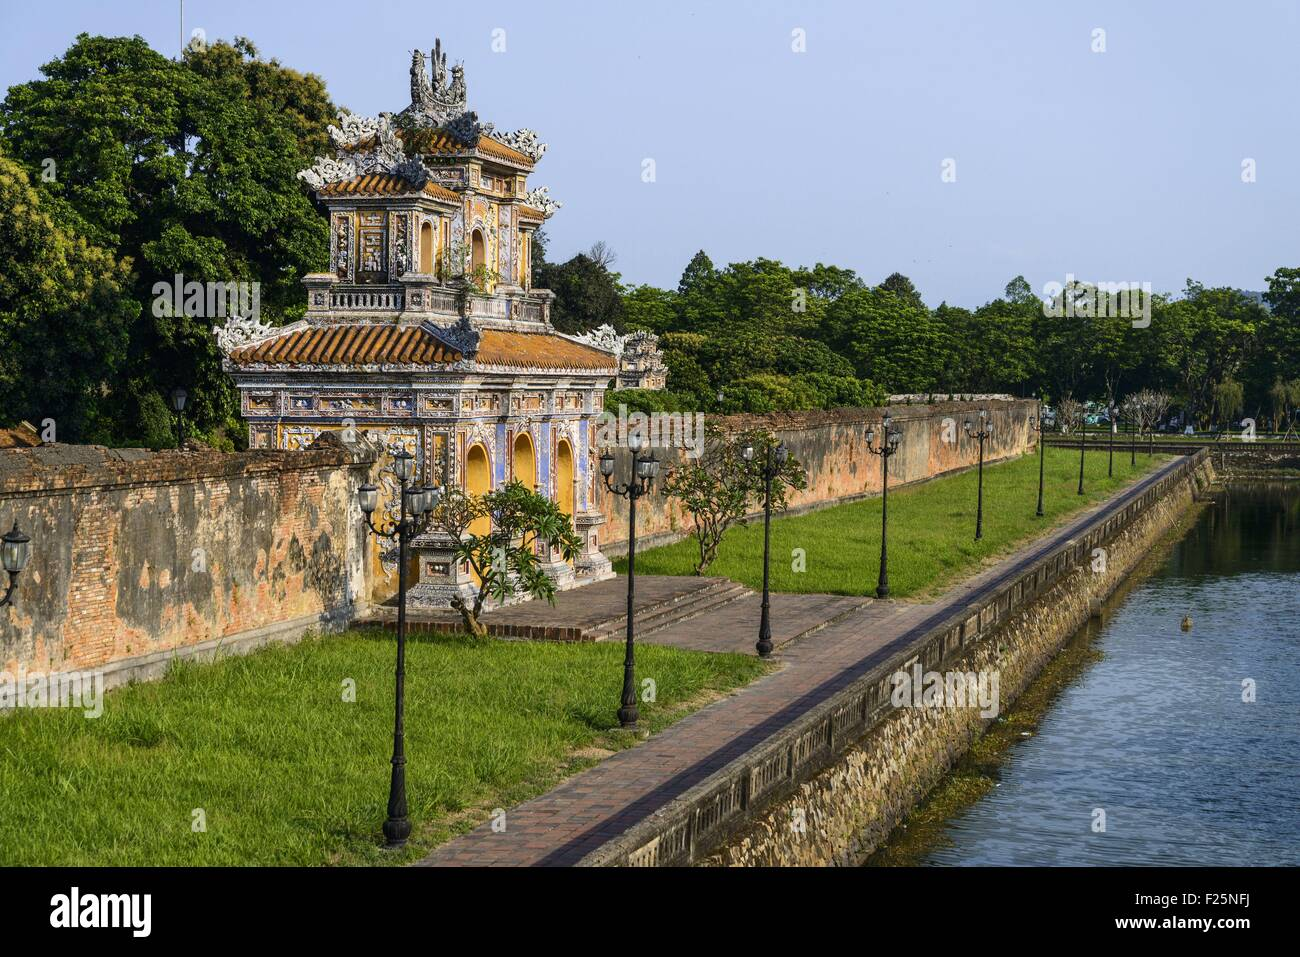 Vietnam, Thua Thien Hue province, Hue, the Imperial Cityl, listed as World Heritage site by UNESCO, the western - Stock Image